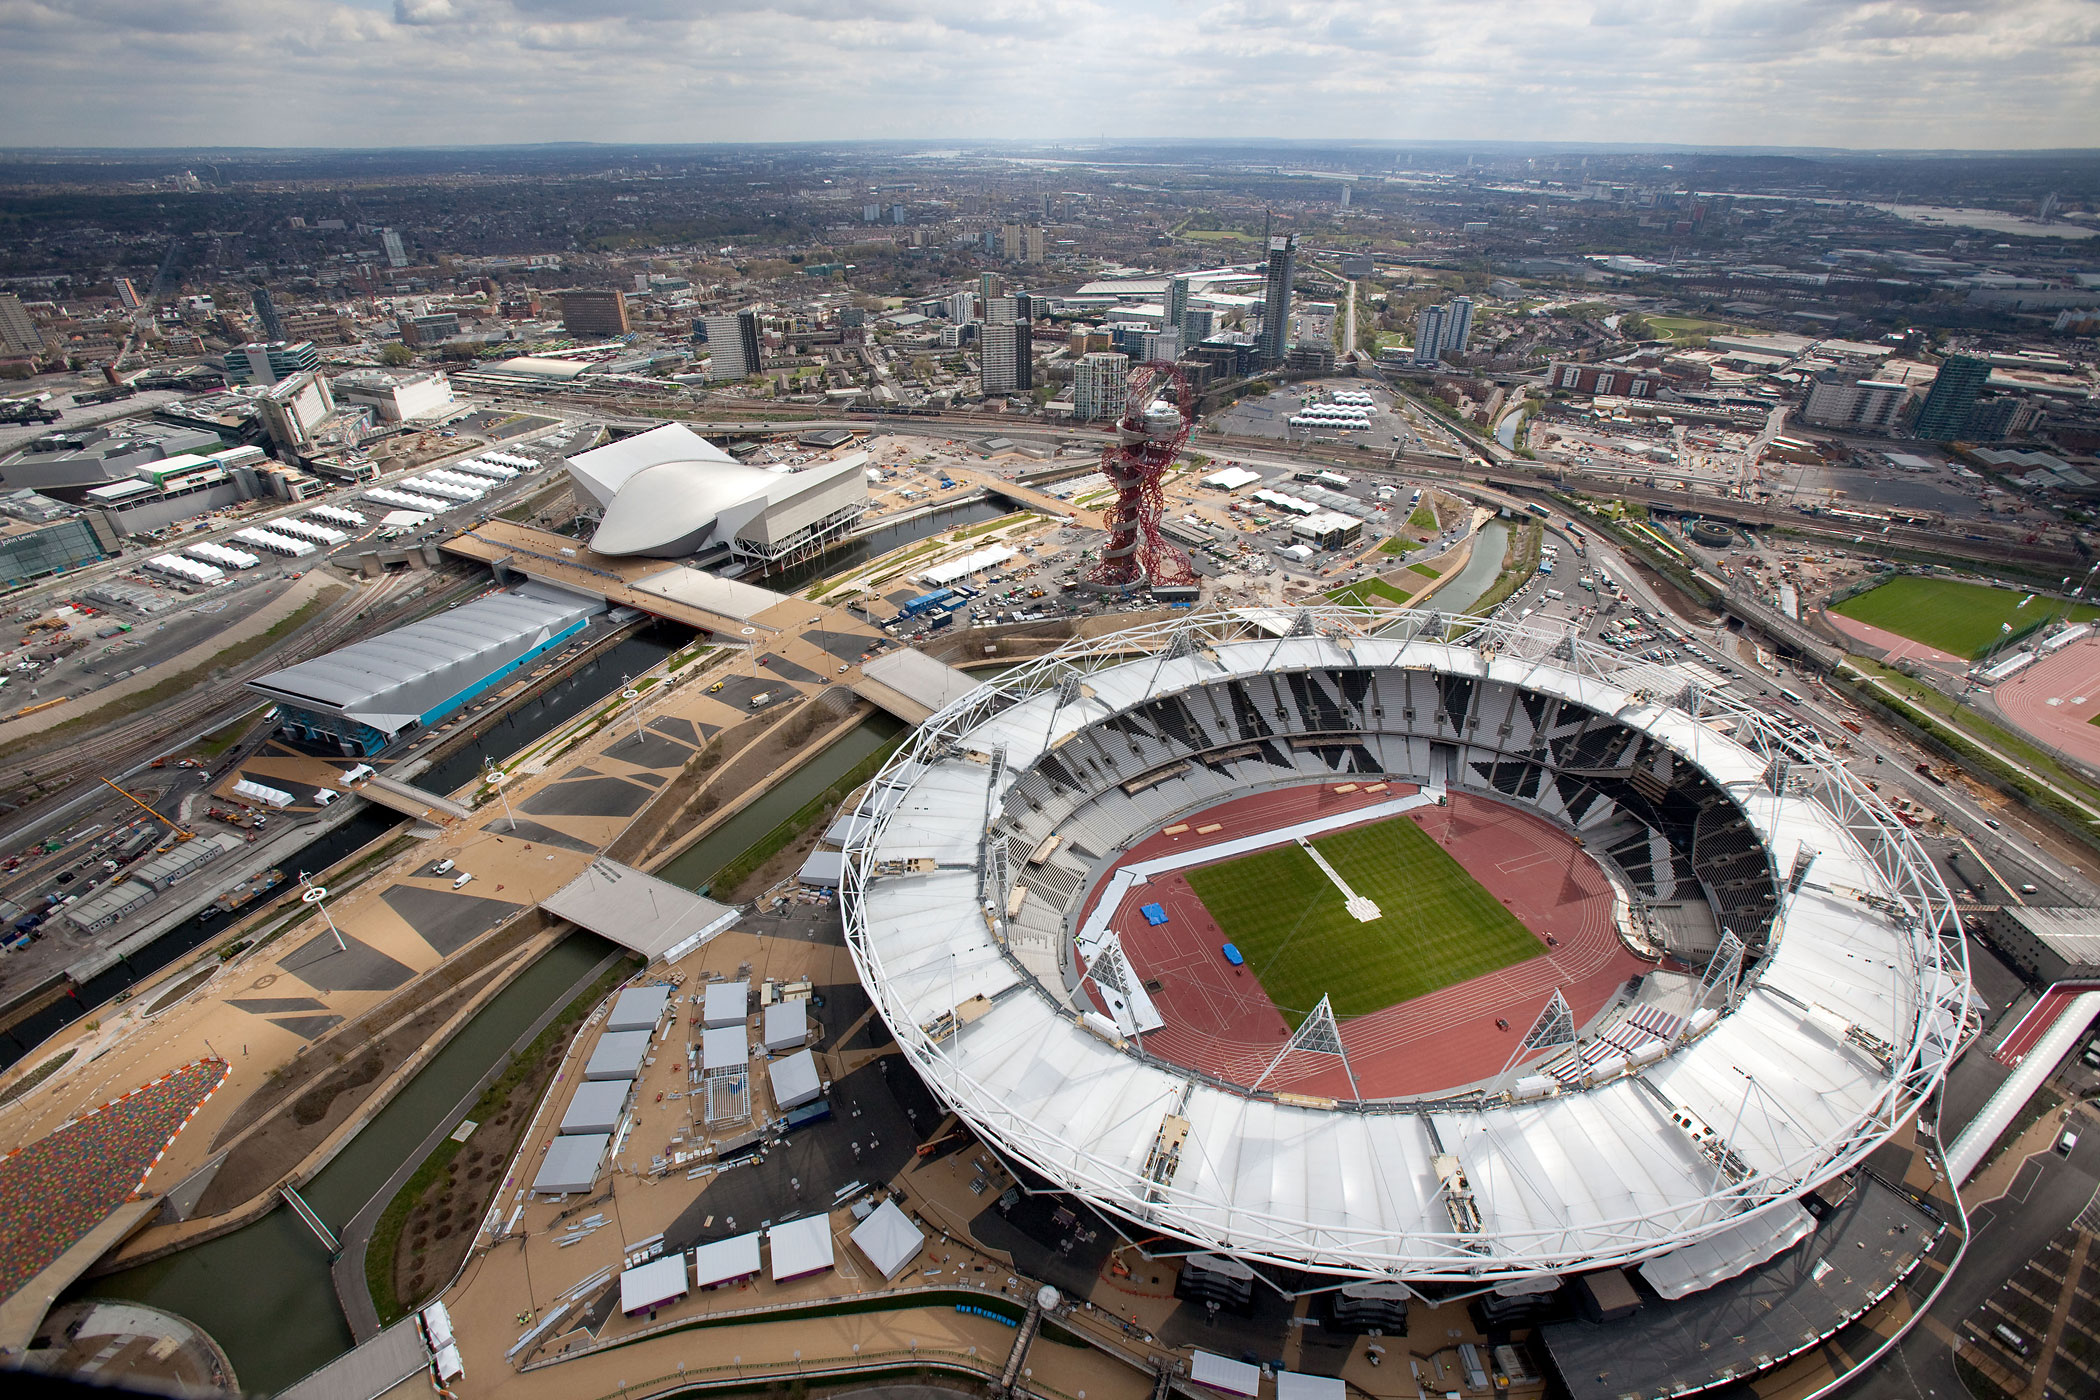 An aerial view of the Olympic Stadium, Aquatics Centre and Water Polo Centre in the London 2012 Olympic Park on April 16, 2012 in London, England.